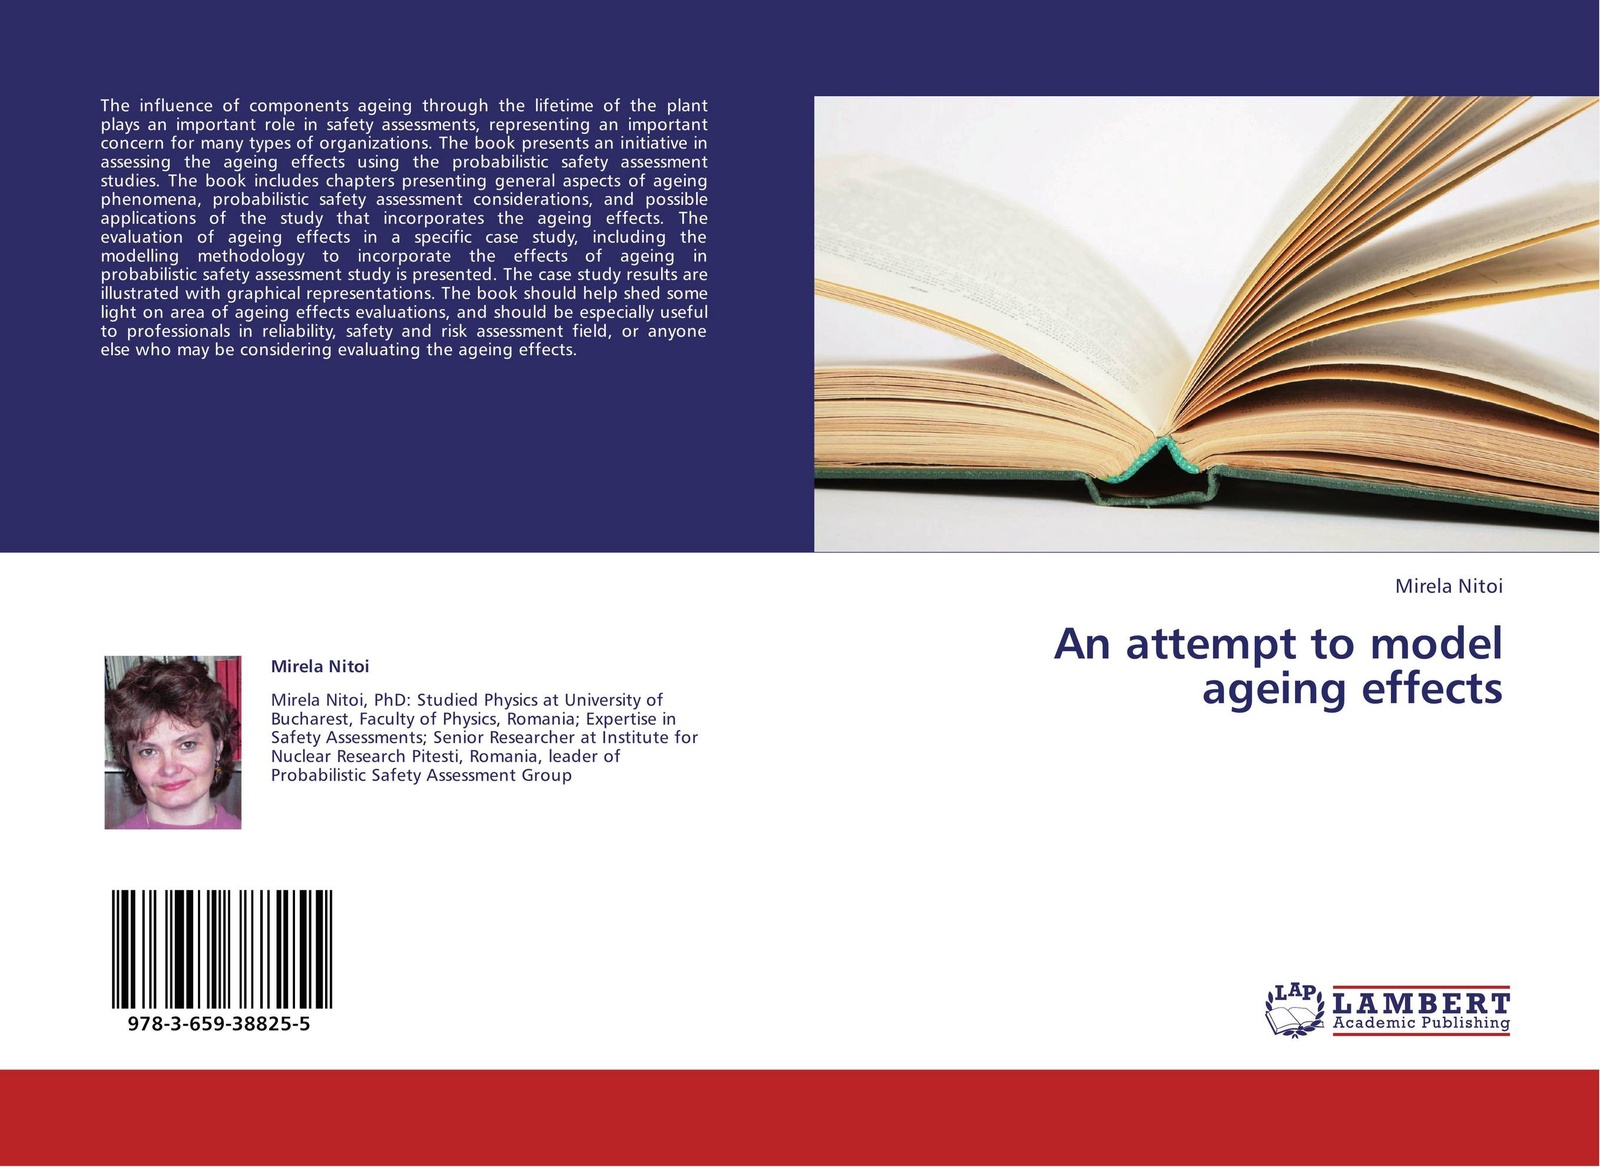 Mirela Nitoi An attempt to model ageing effects happy ageing